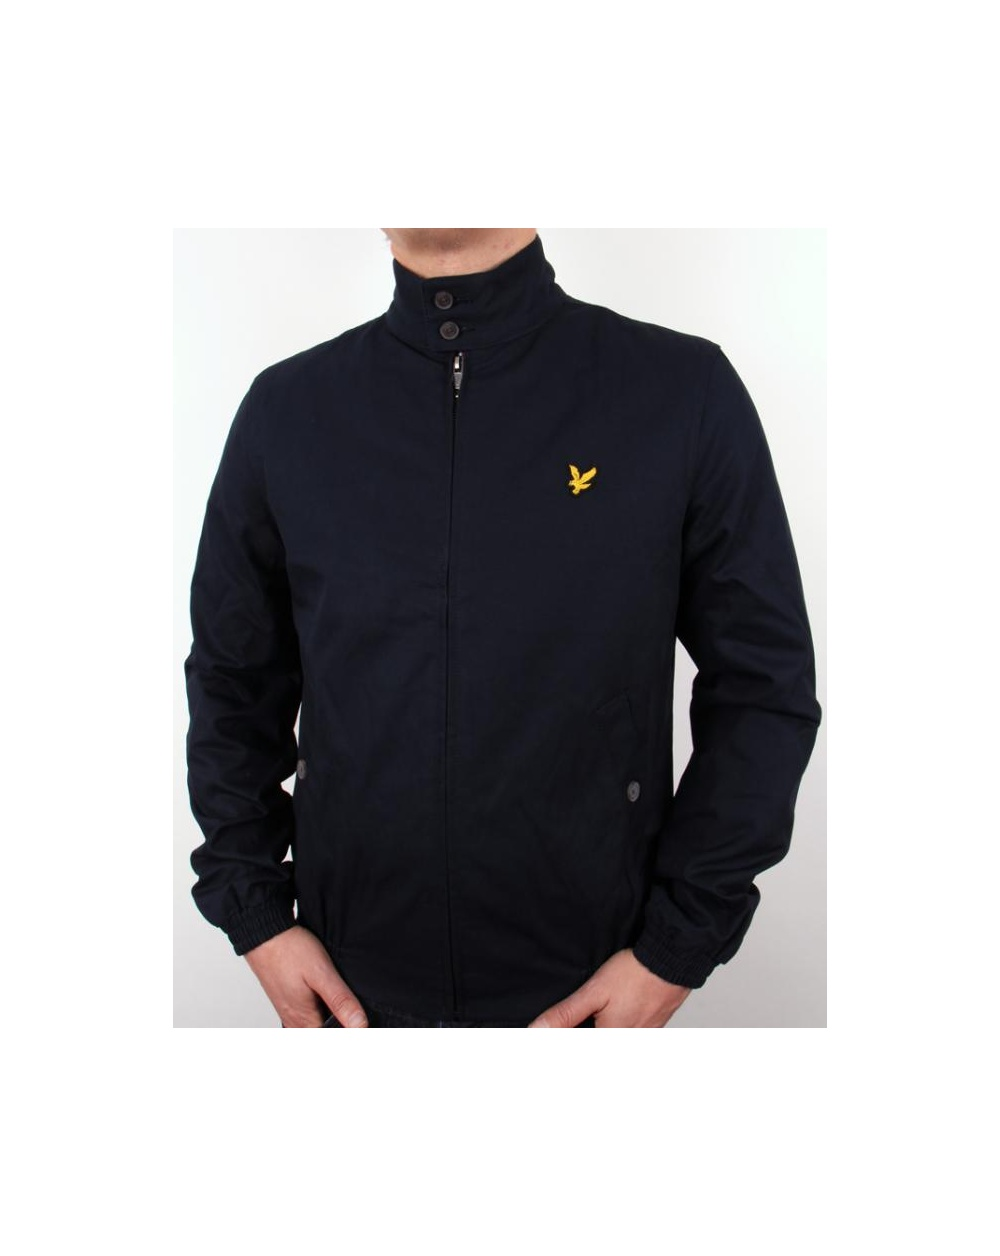 lyle and scott harrington jacket new navy coat mens. Black Bedroom Furniture Sets. Home Design Ideas